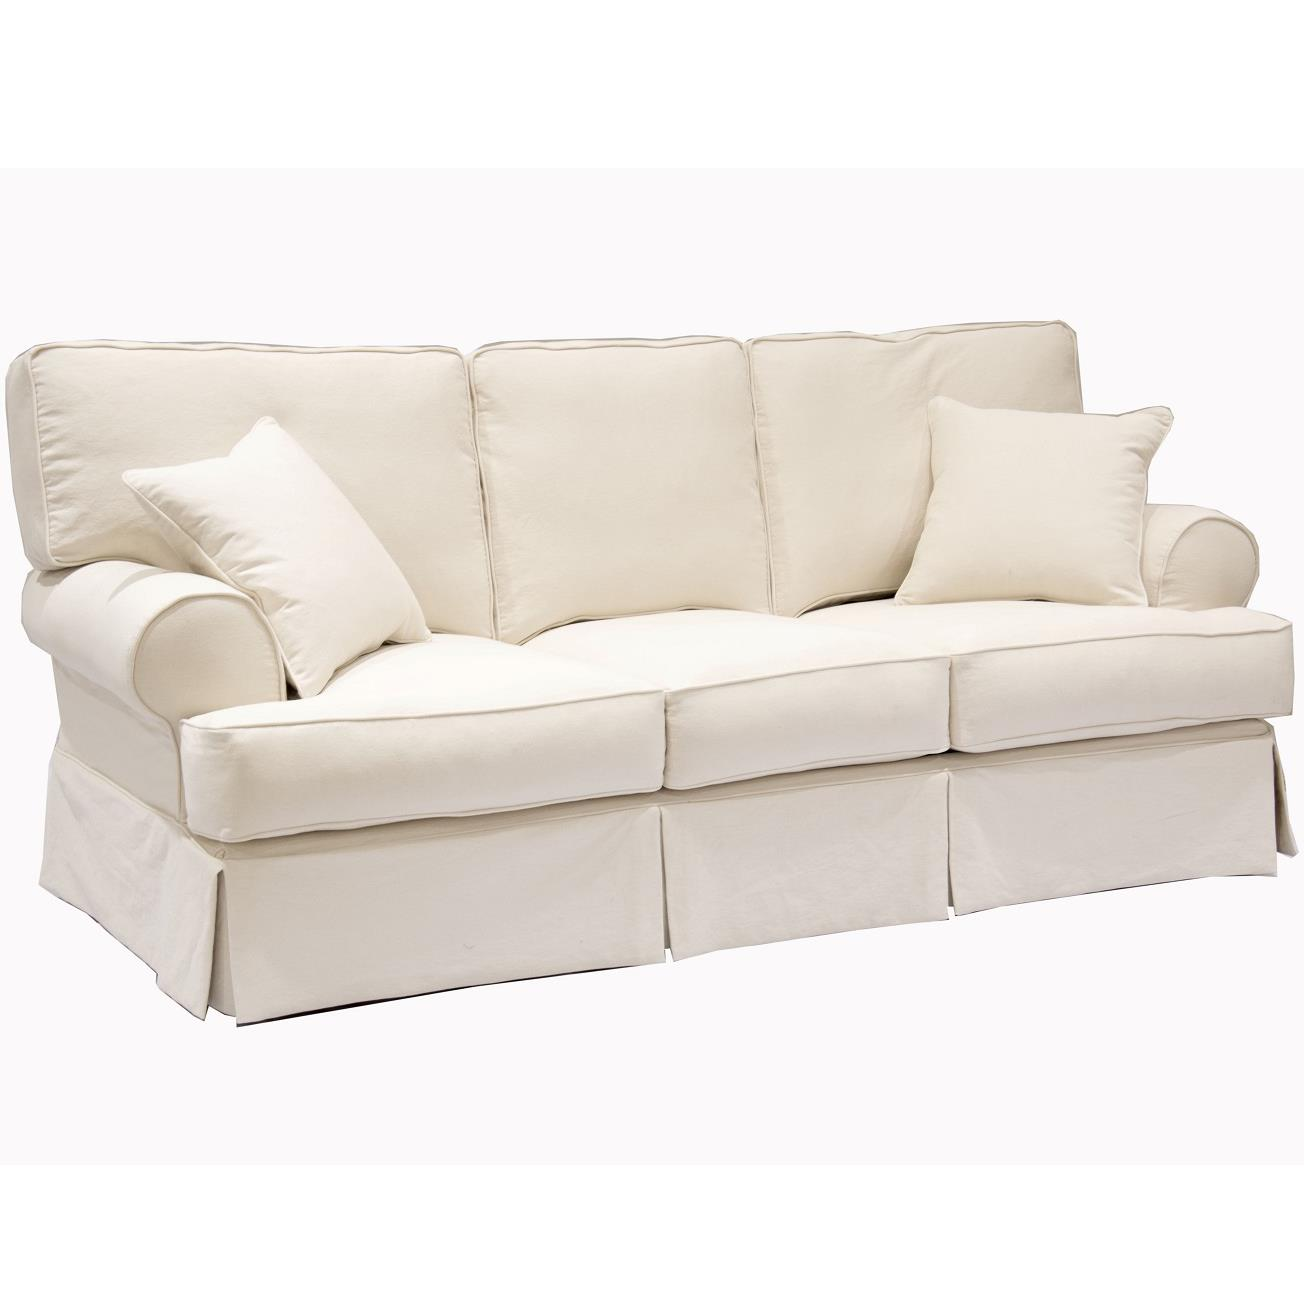 Synergy Home Furnishings 669 Casual Sofa - Item Number: 669-01-ClassicNatural